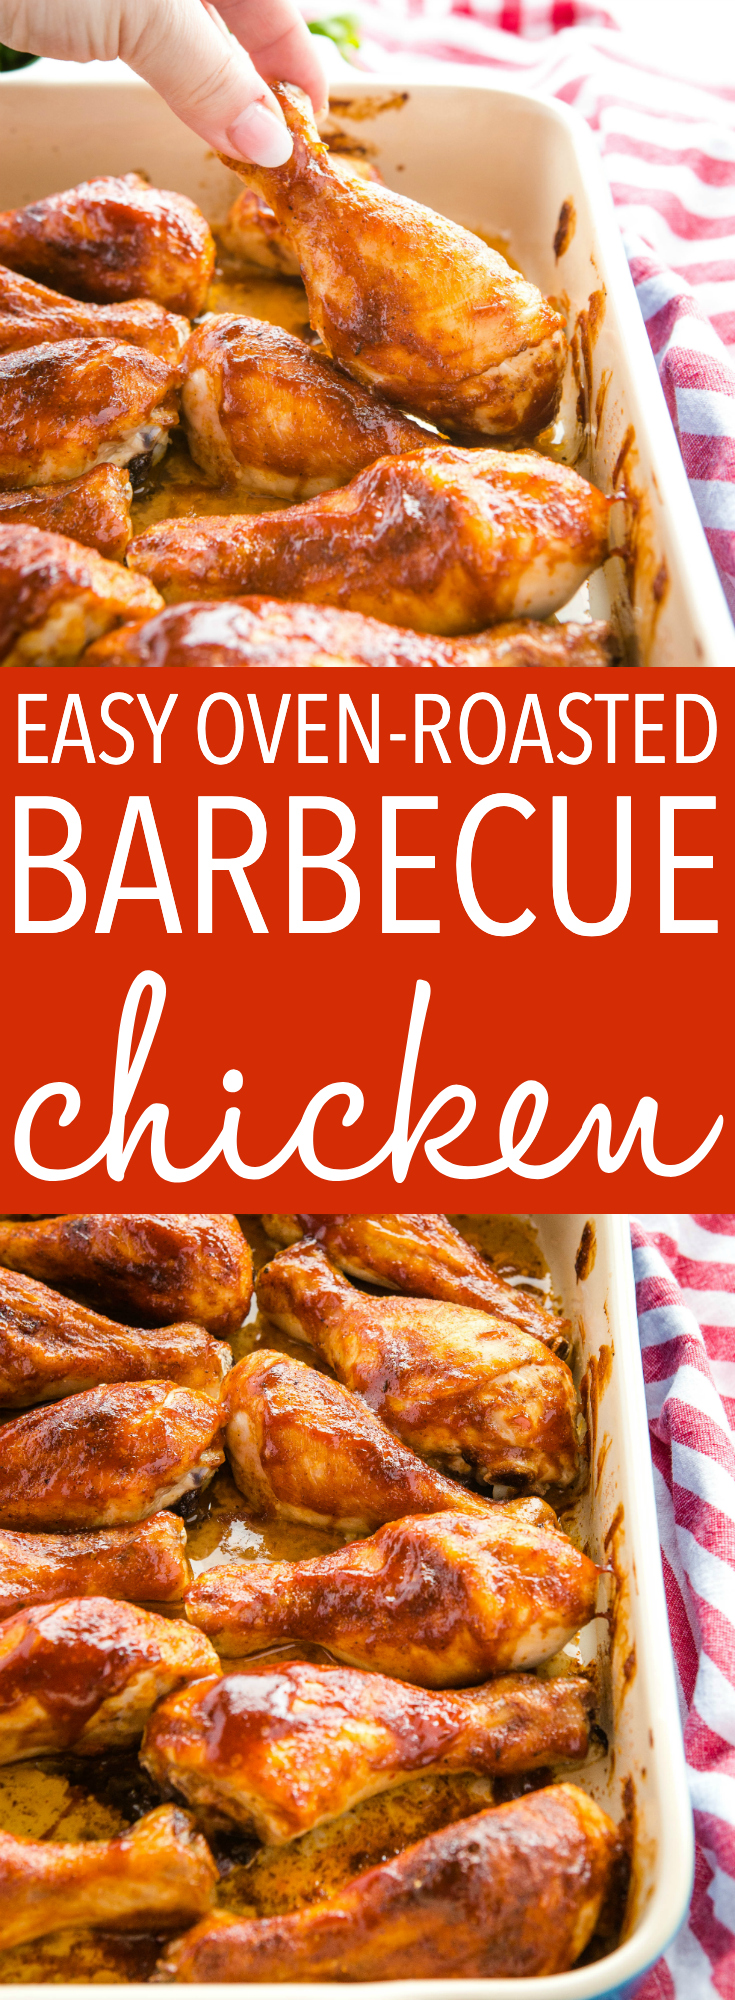 This Easy Oven-Roasted Barbecue Chicken is a delicious and simple main dish recipe made with only 5 simple ingredients! No barbecue or grill required! Recipe from thebusybaker.ca! #chicken #barbecue #grill #summer #barbecuechicken #barbecuesauce #party #backyardbarbecue #family via @busybakerblog